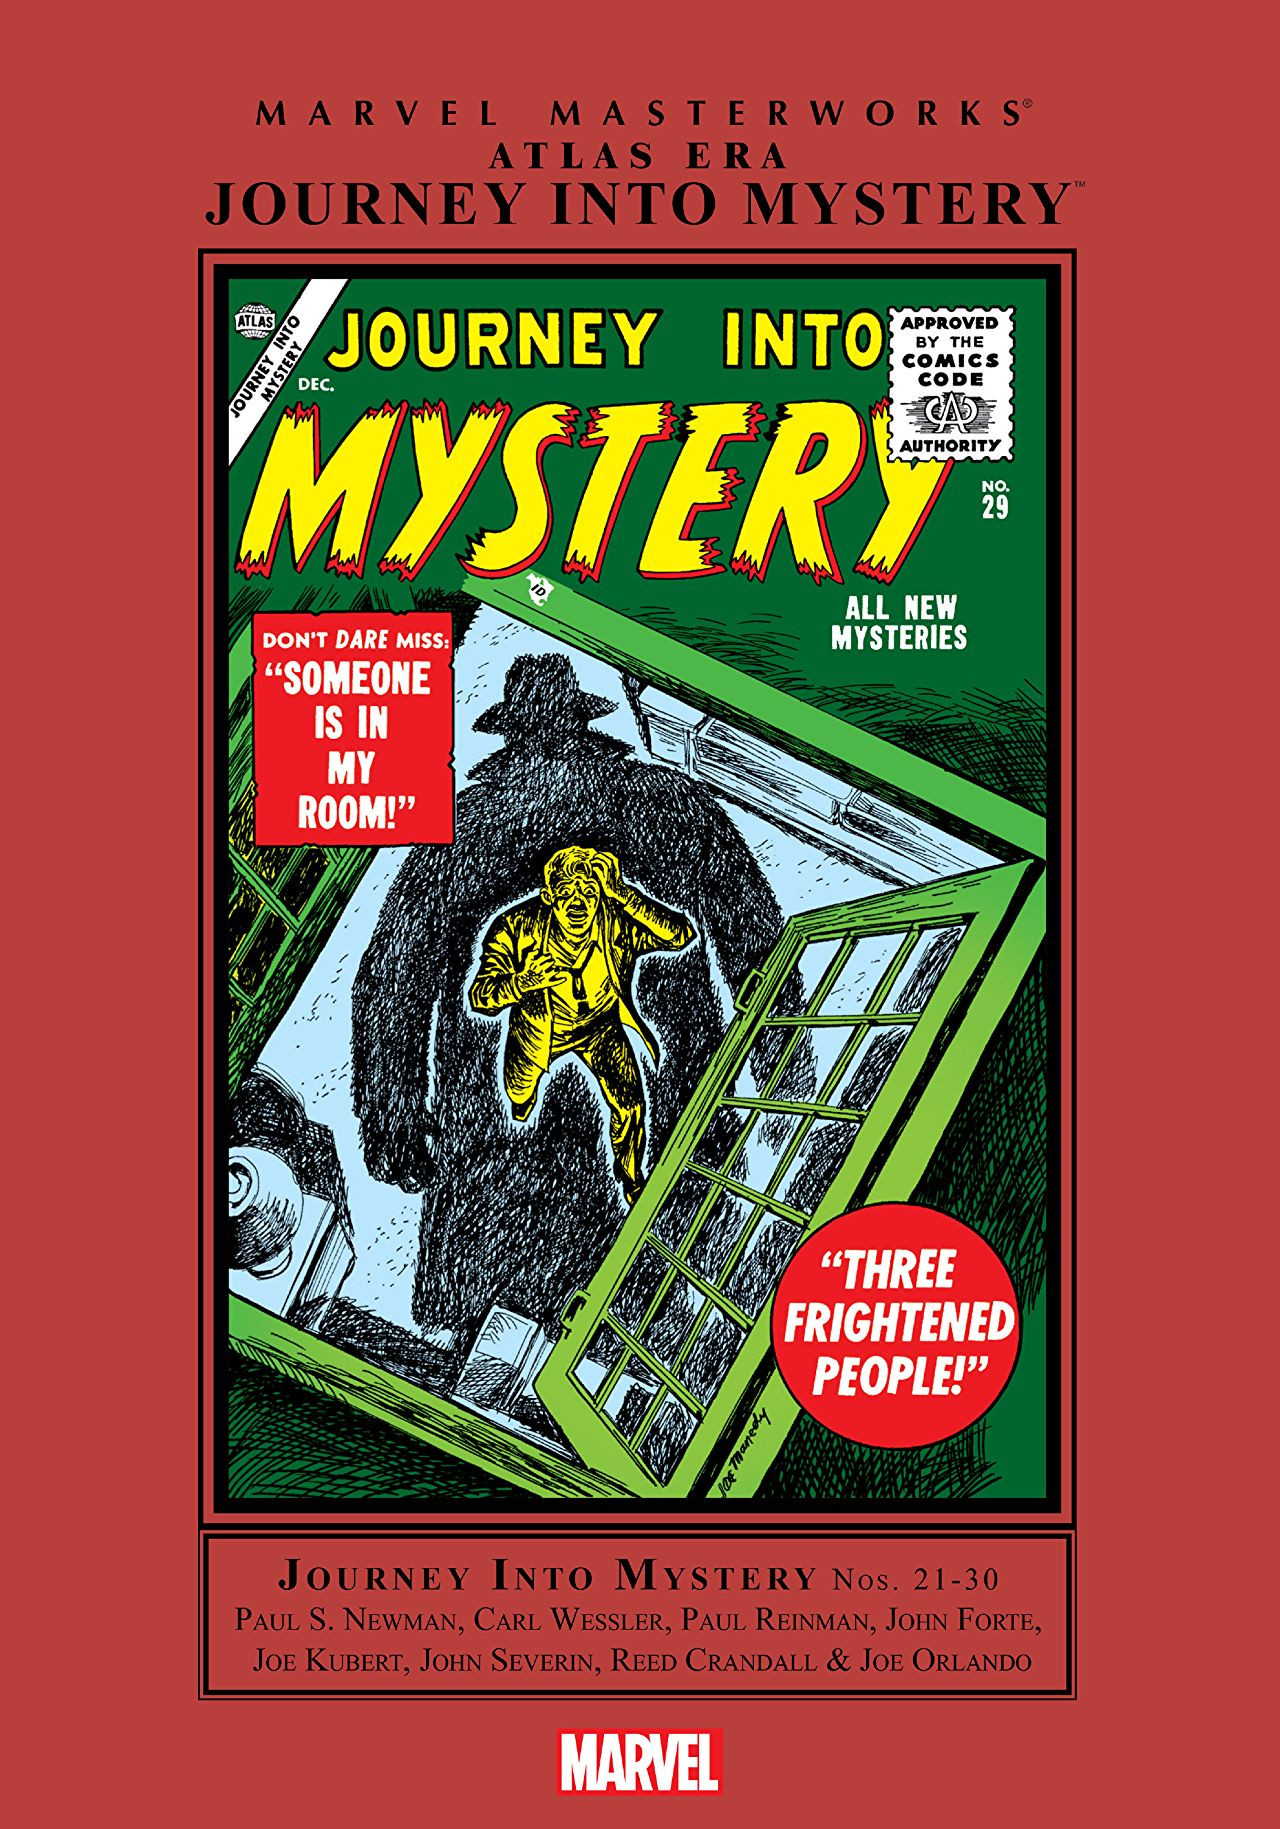 Marvel Masterworks: Atlas Era Journey into Mystery Vol 1 3